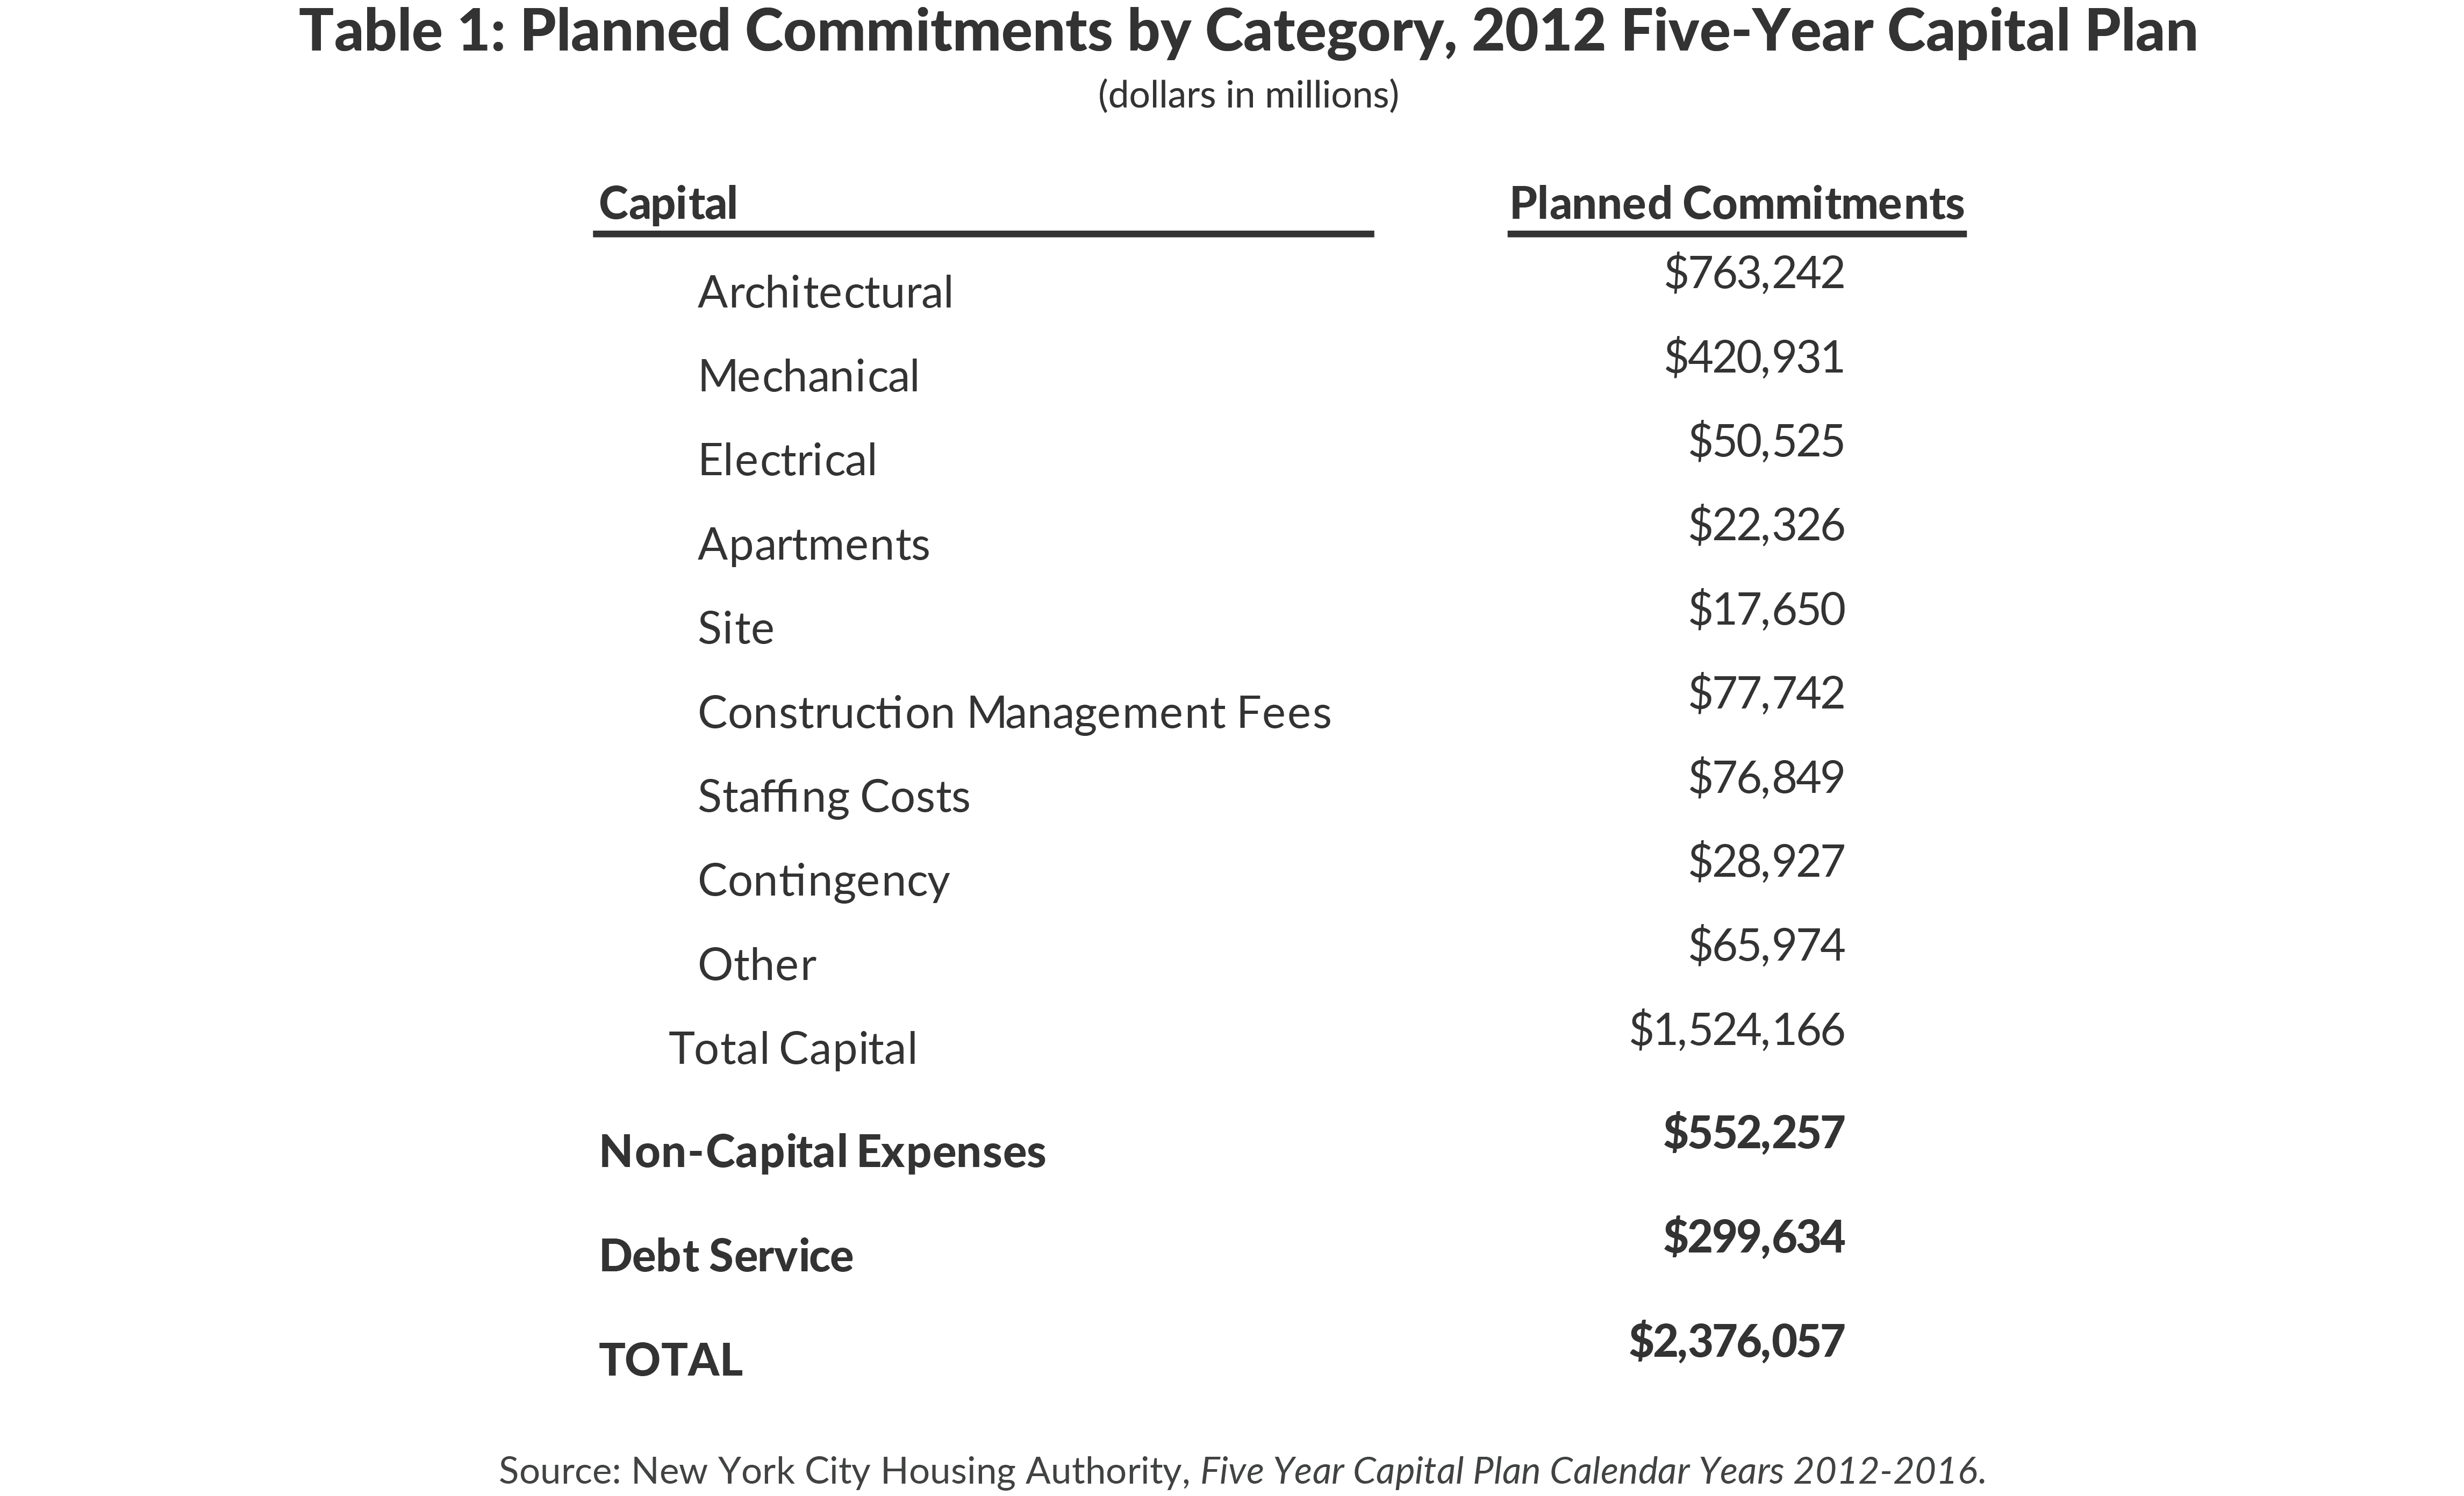 Table 1: Planned Commitments by Category, 2012 Five-Year Capital Plan